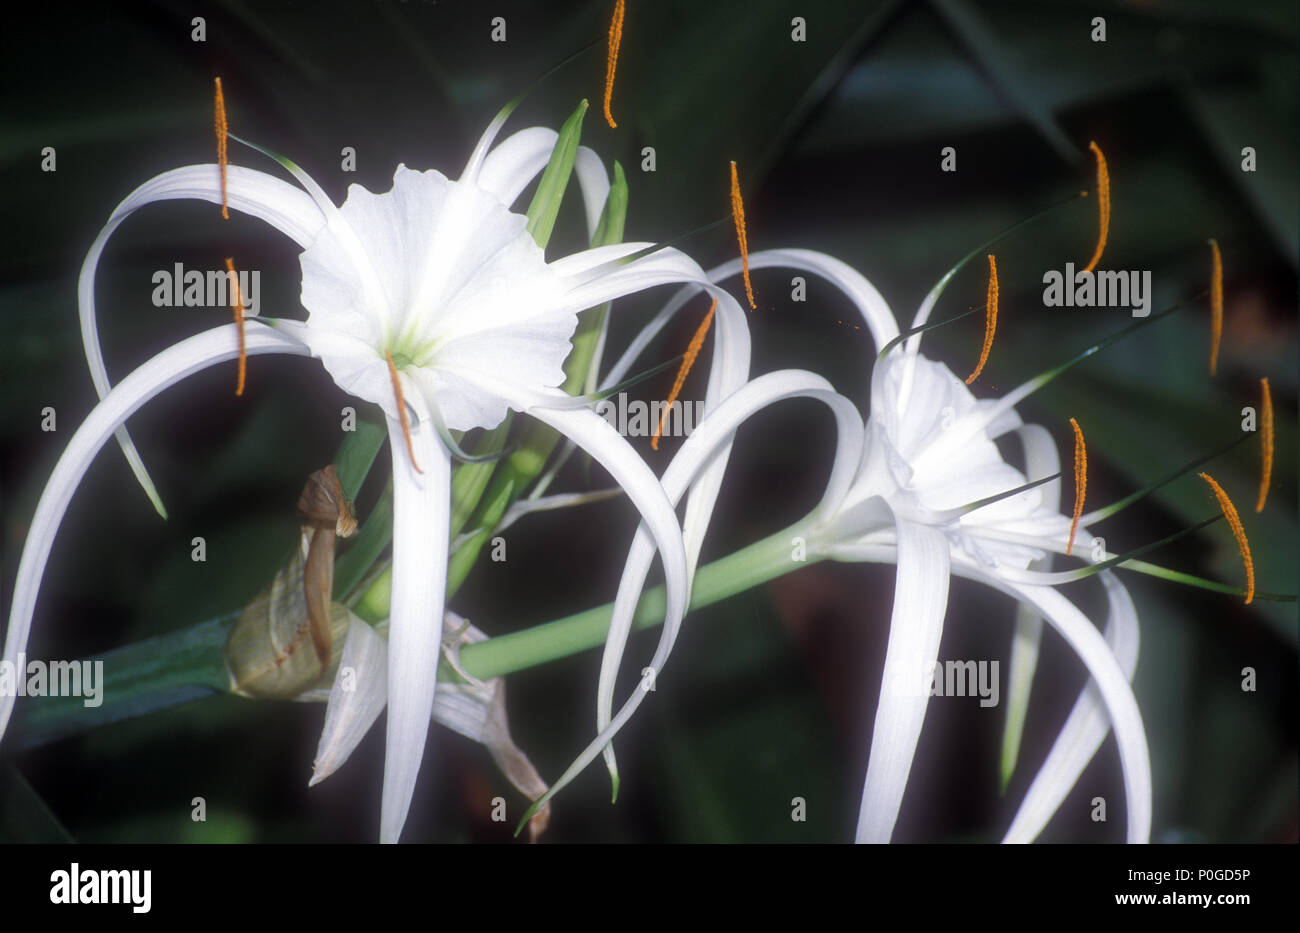 Names of lilies stock photos names of lilies stock images alamy hymenocallis littoralis common names spider flowers ismene spider lily filmy lily izmirmasajfo